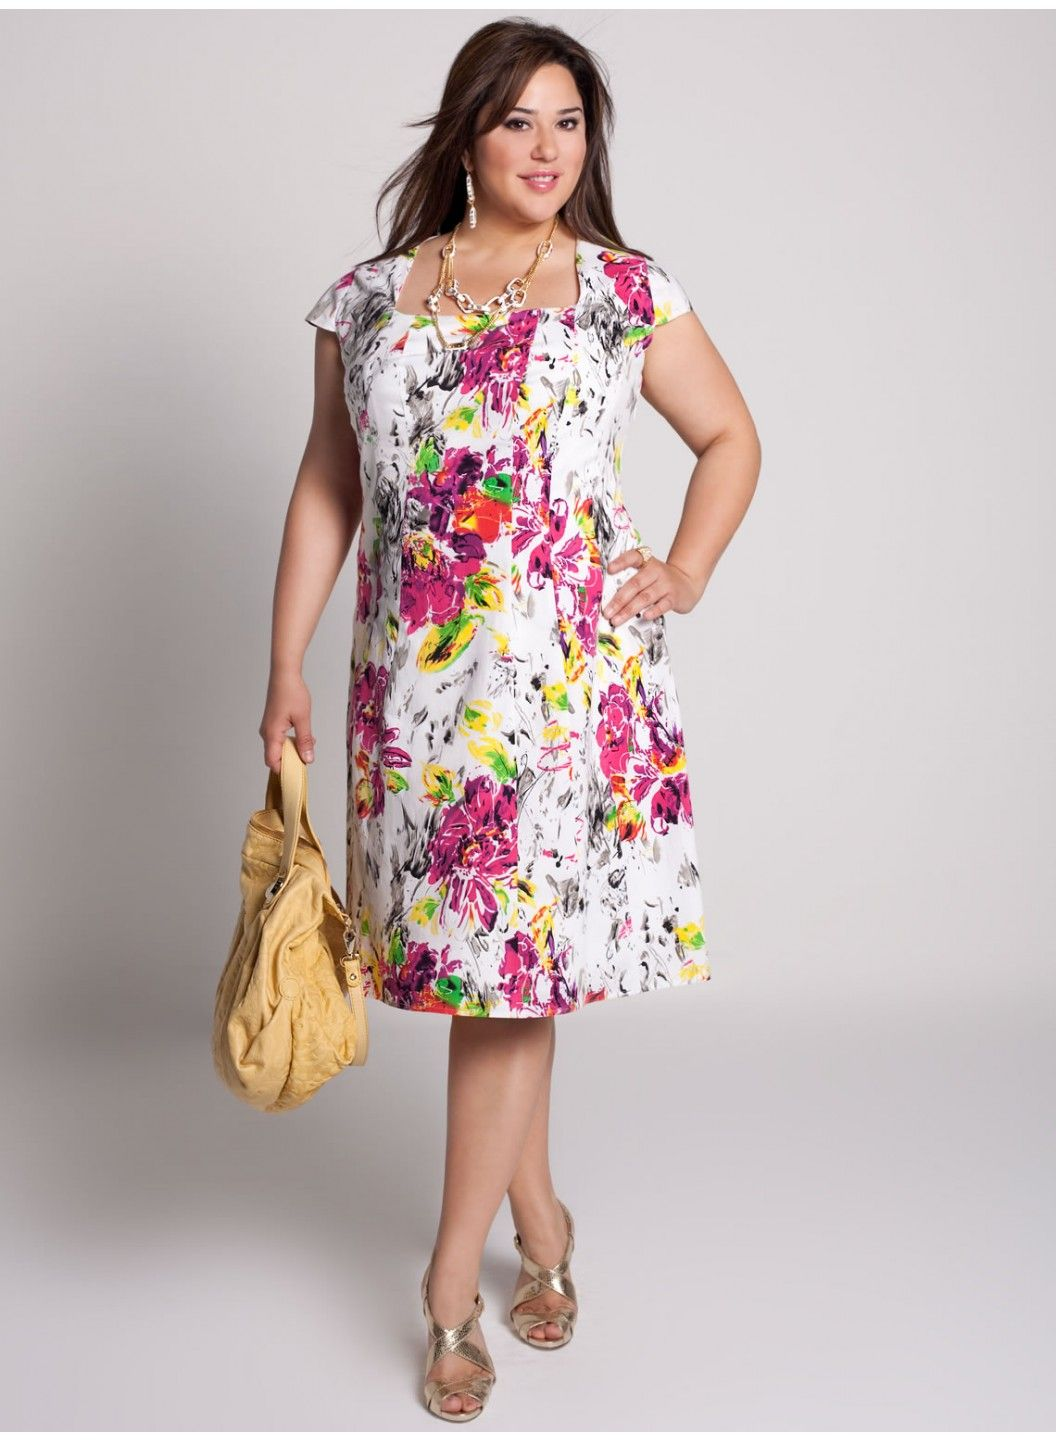 Summer dress. Floral plus size dress | Plus size dresses ...